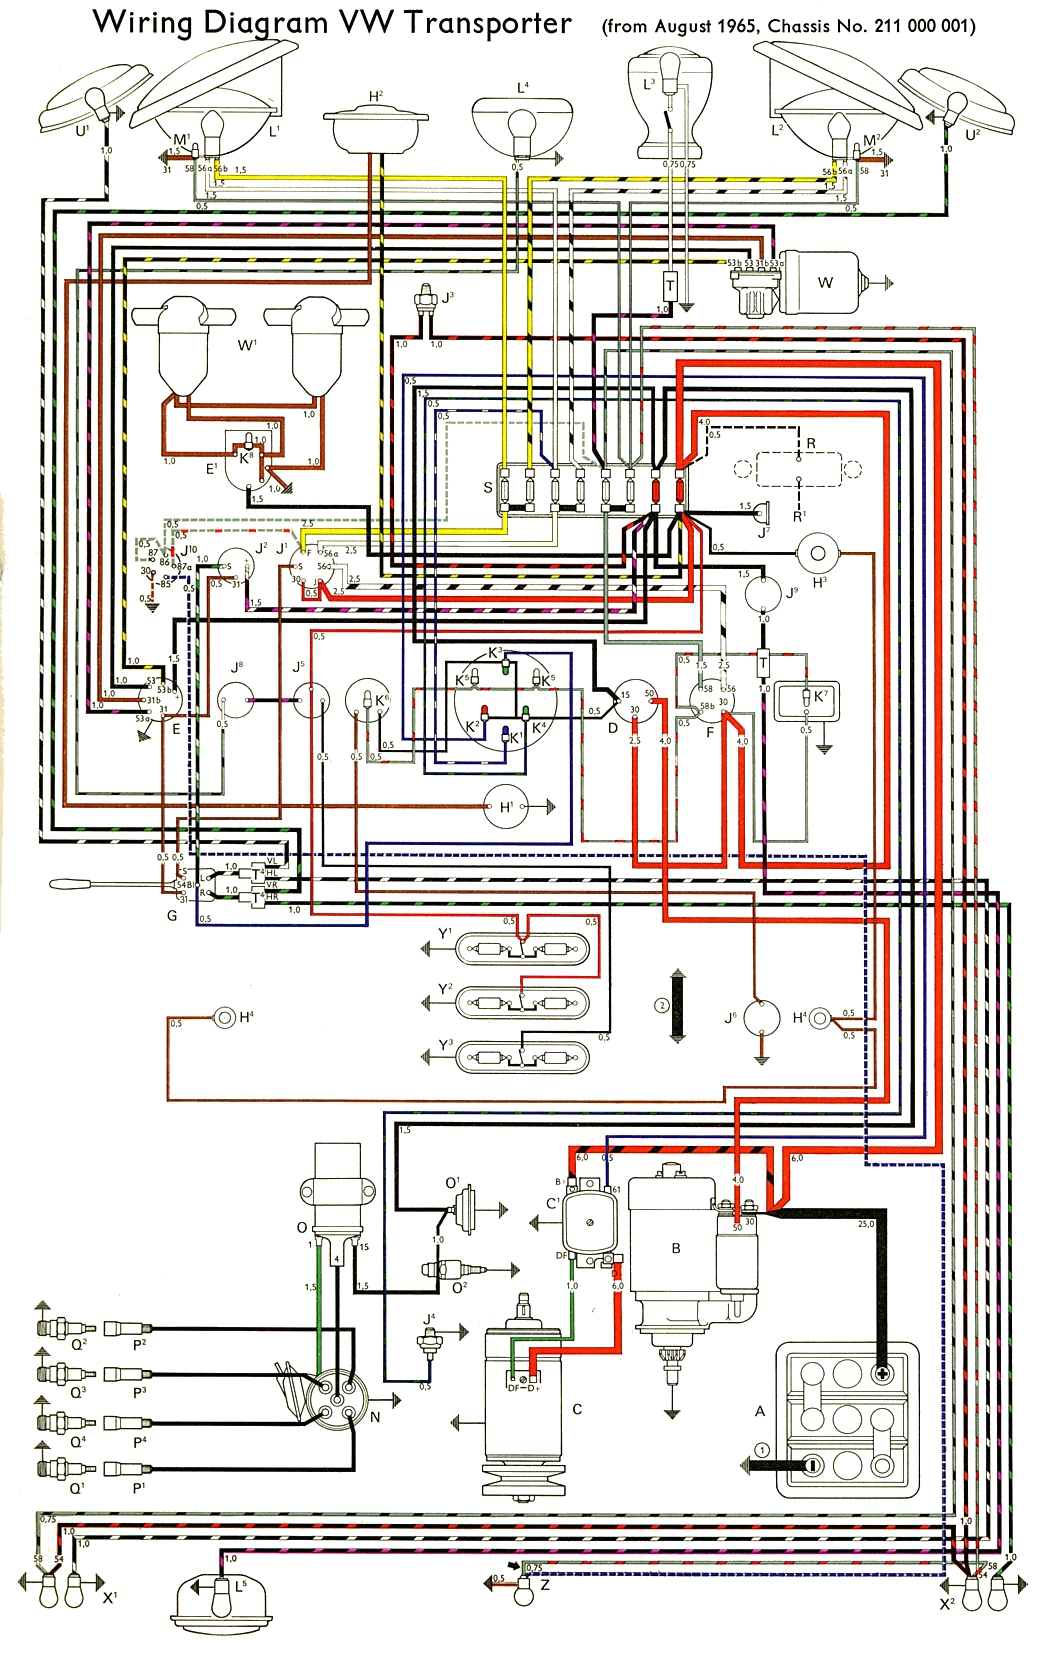 DC95 Vw Super Beetle Fuel Injection Wiring Diagram | Wiring ... Jeep Howell Fuel Injection Wiring Diagram on fuel injection service, fuel injection sensor, fuel injection carburetor, fuel injection valve, fuel injection engine, fuel pump wiring diagram, fuel injection flow diagram, fuel injection ford, fuel injection systems, fuel injection fuel tank, fuel injection timing, fuel gauge wiring diagram, fuel injection troubleshooting guide, fuel injection exploded view, fuel injection fuse, fuel injection distributor, fuel injection pump diagram, fuel oil pump diagram, fuel injection hose, 1989 f150 fuel system diagram,